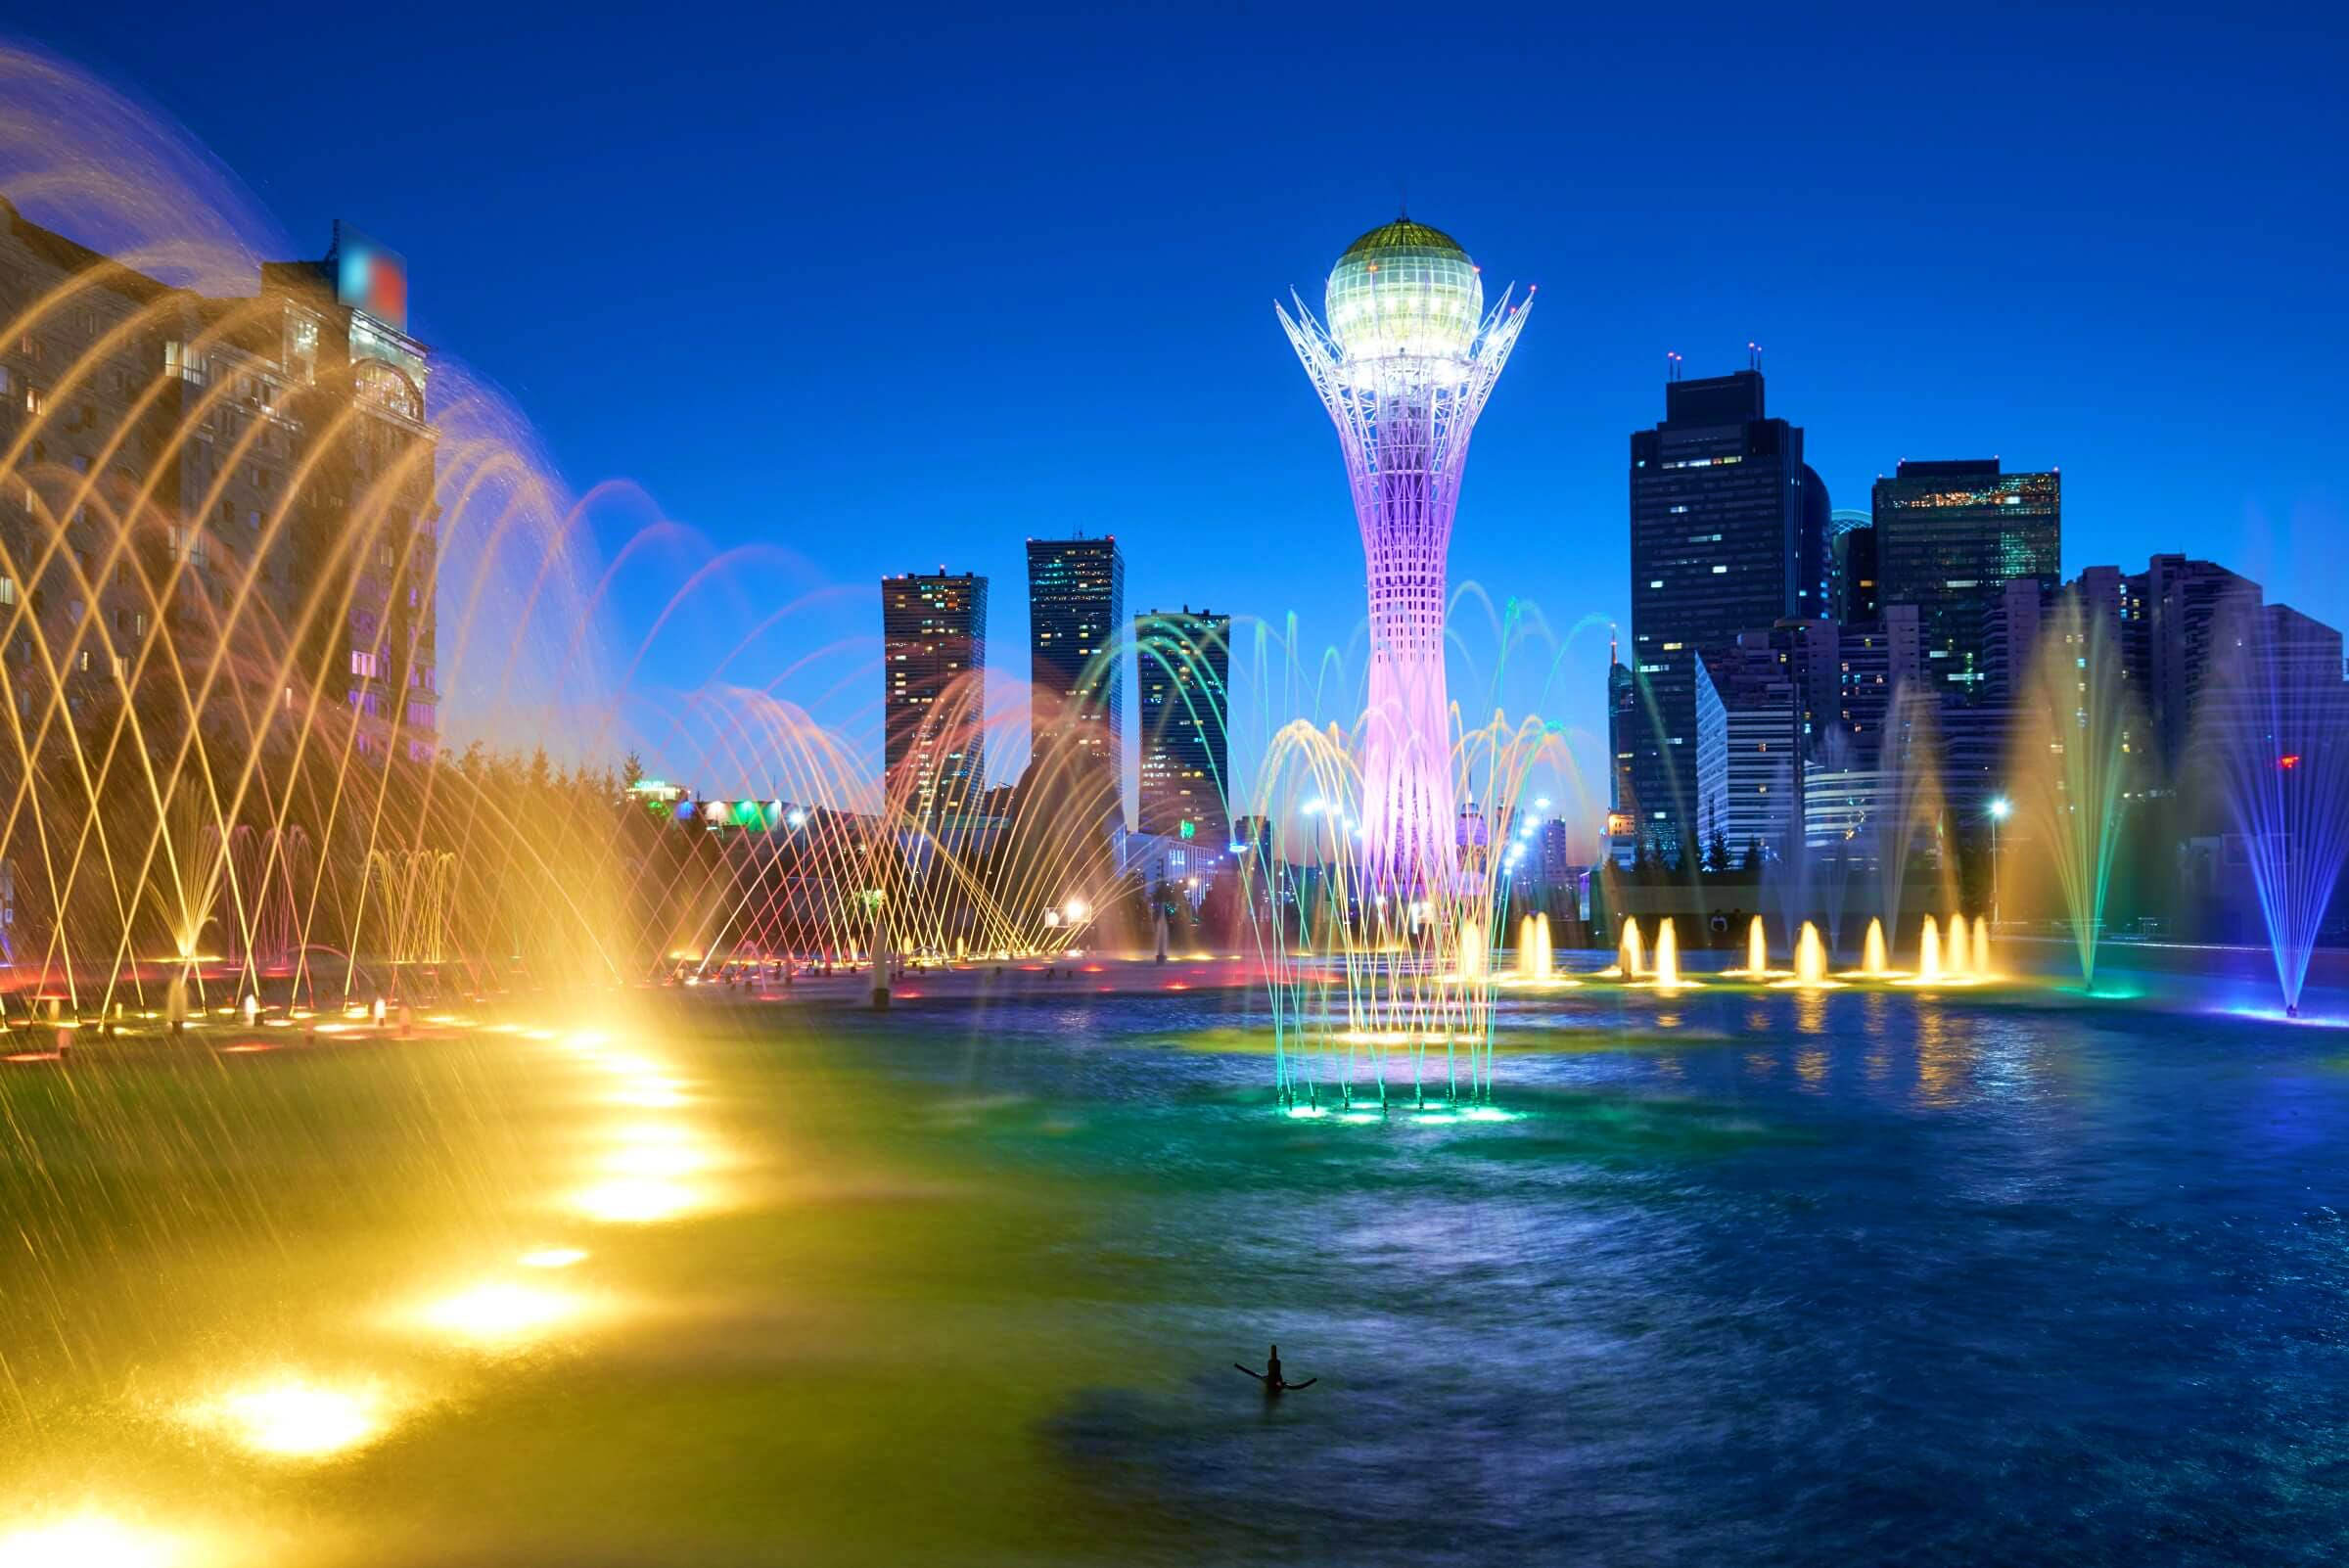 Kazakhstan has given its capital city a brand new name